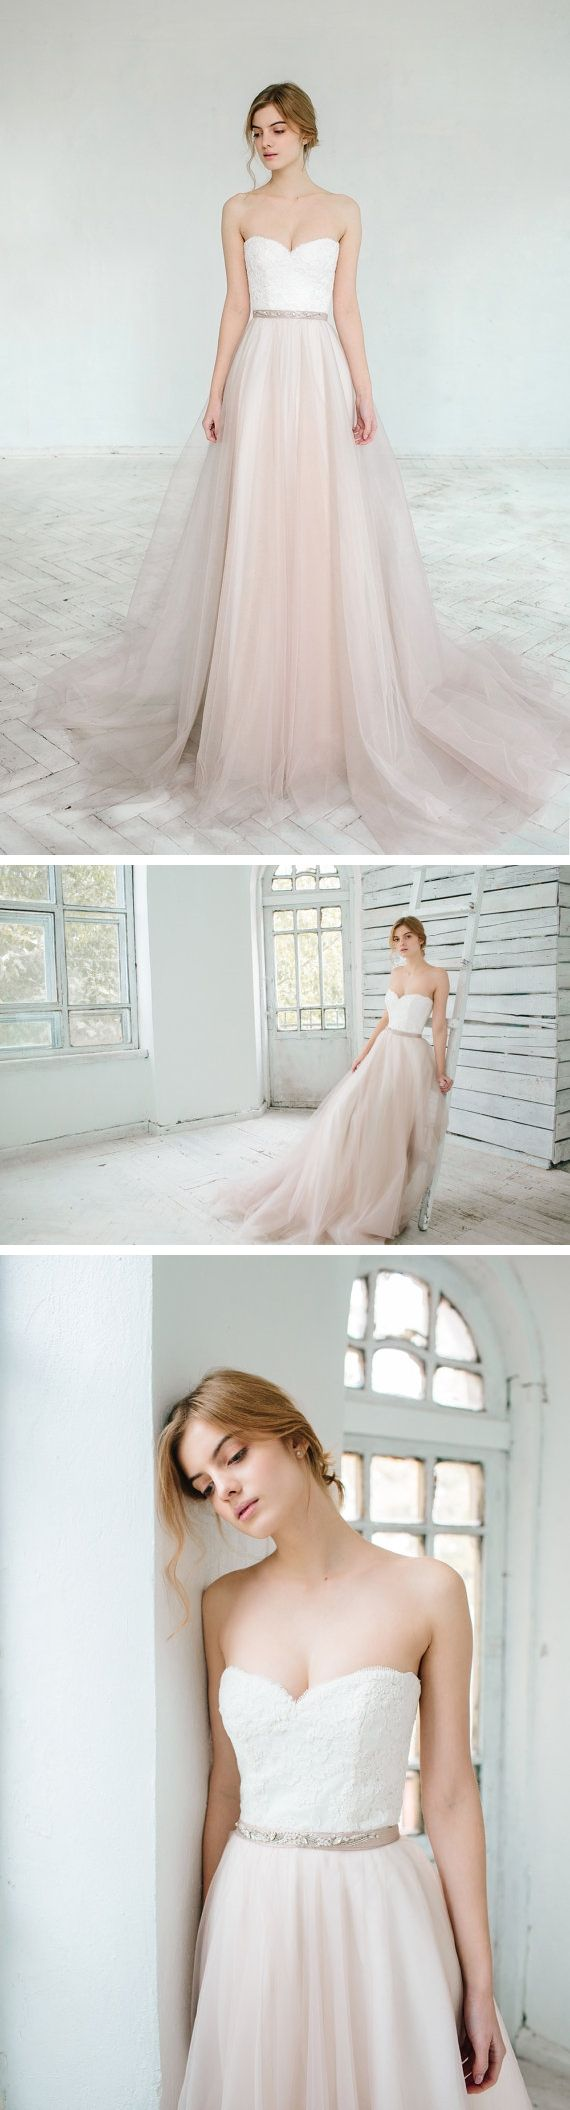 333 best Wedding Dresses images on Pinterest | Wedding hairdos ...